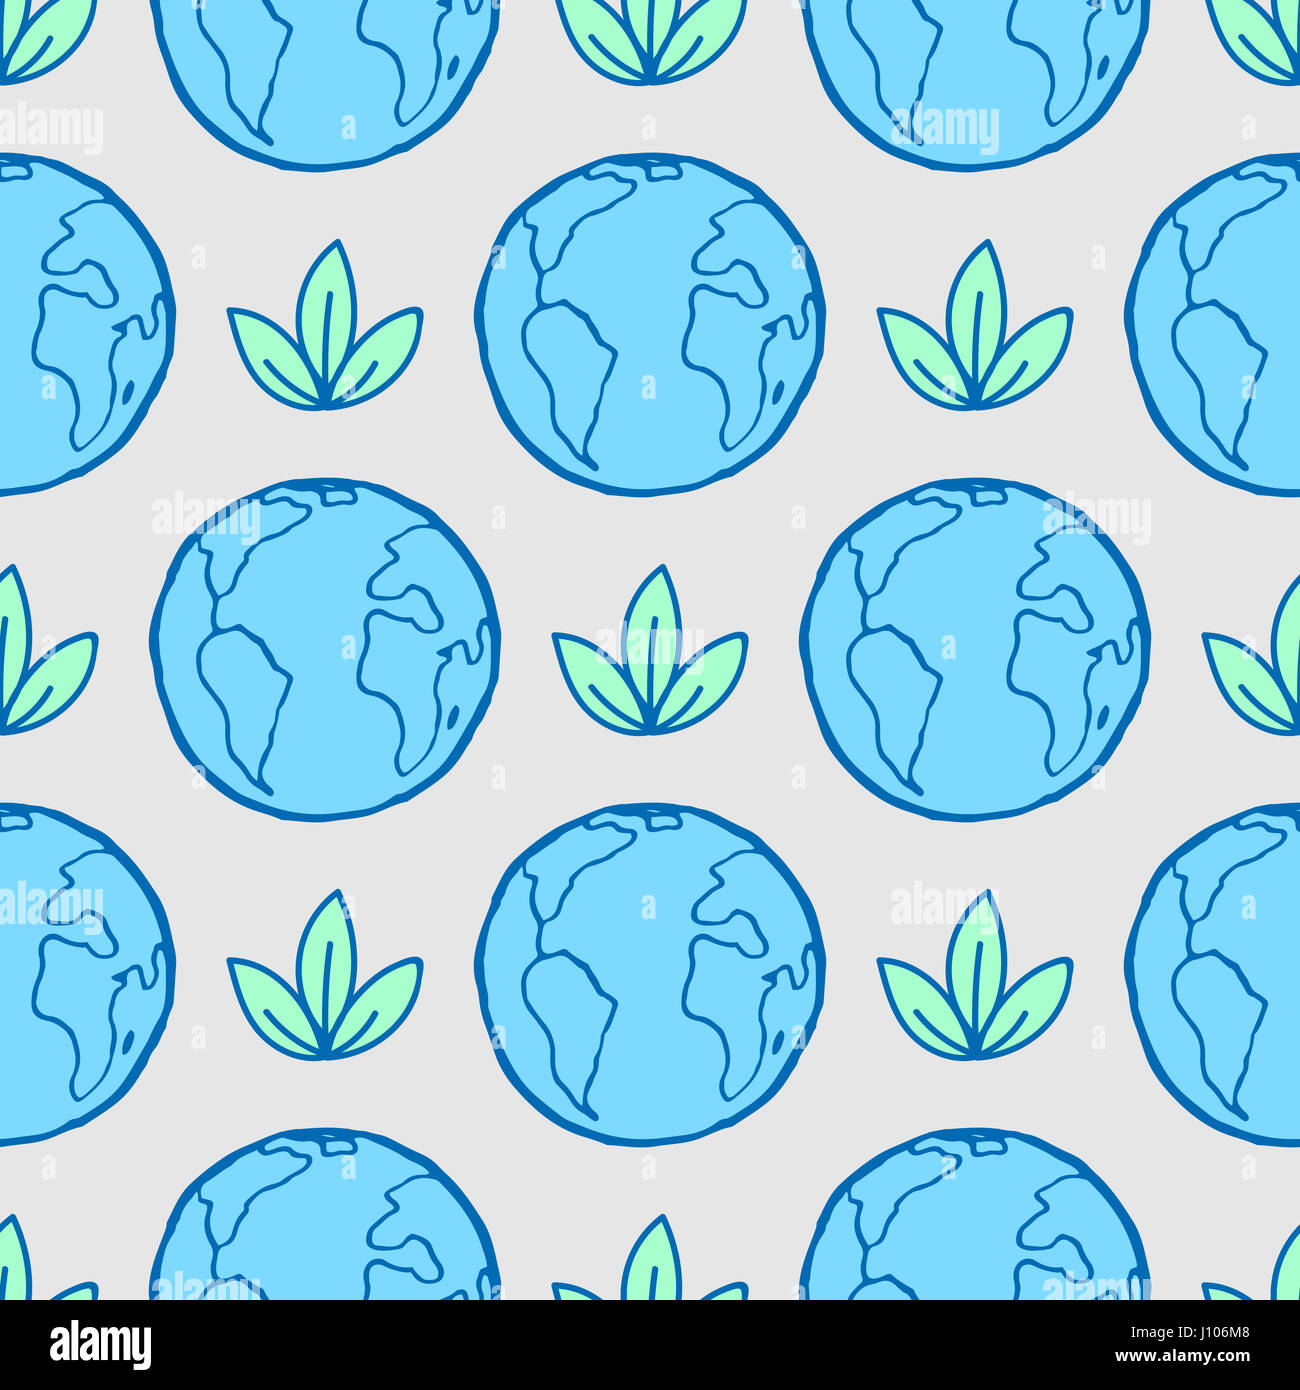 International Mother Earth Day April 22 Ecology Seamless